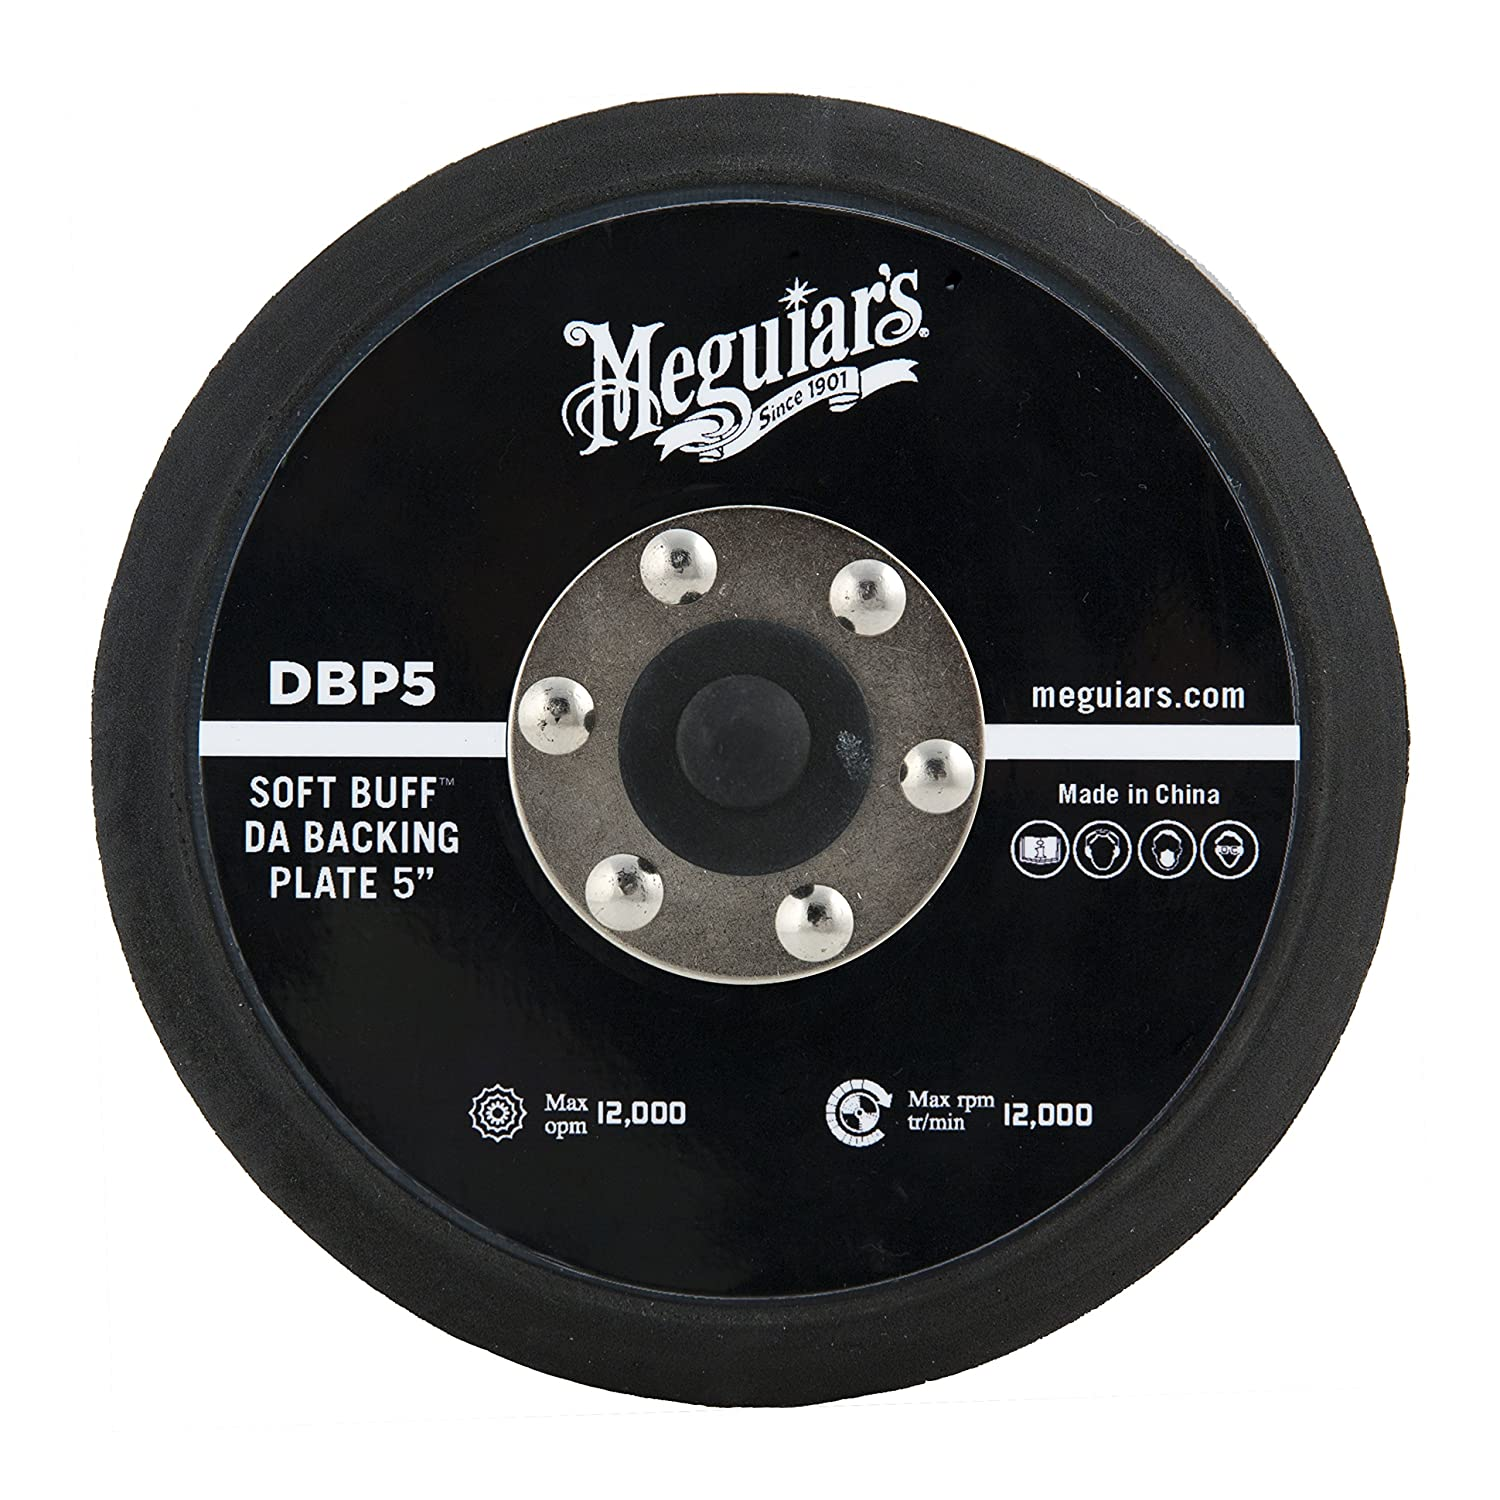 Meguiar's 5' Soft Buff DA Backing Plate – Use with MT300 Dual Action Variable Speed Polisher – DBP5